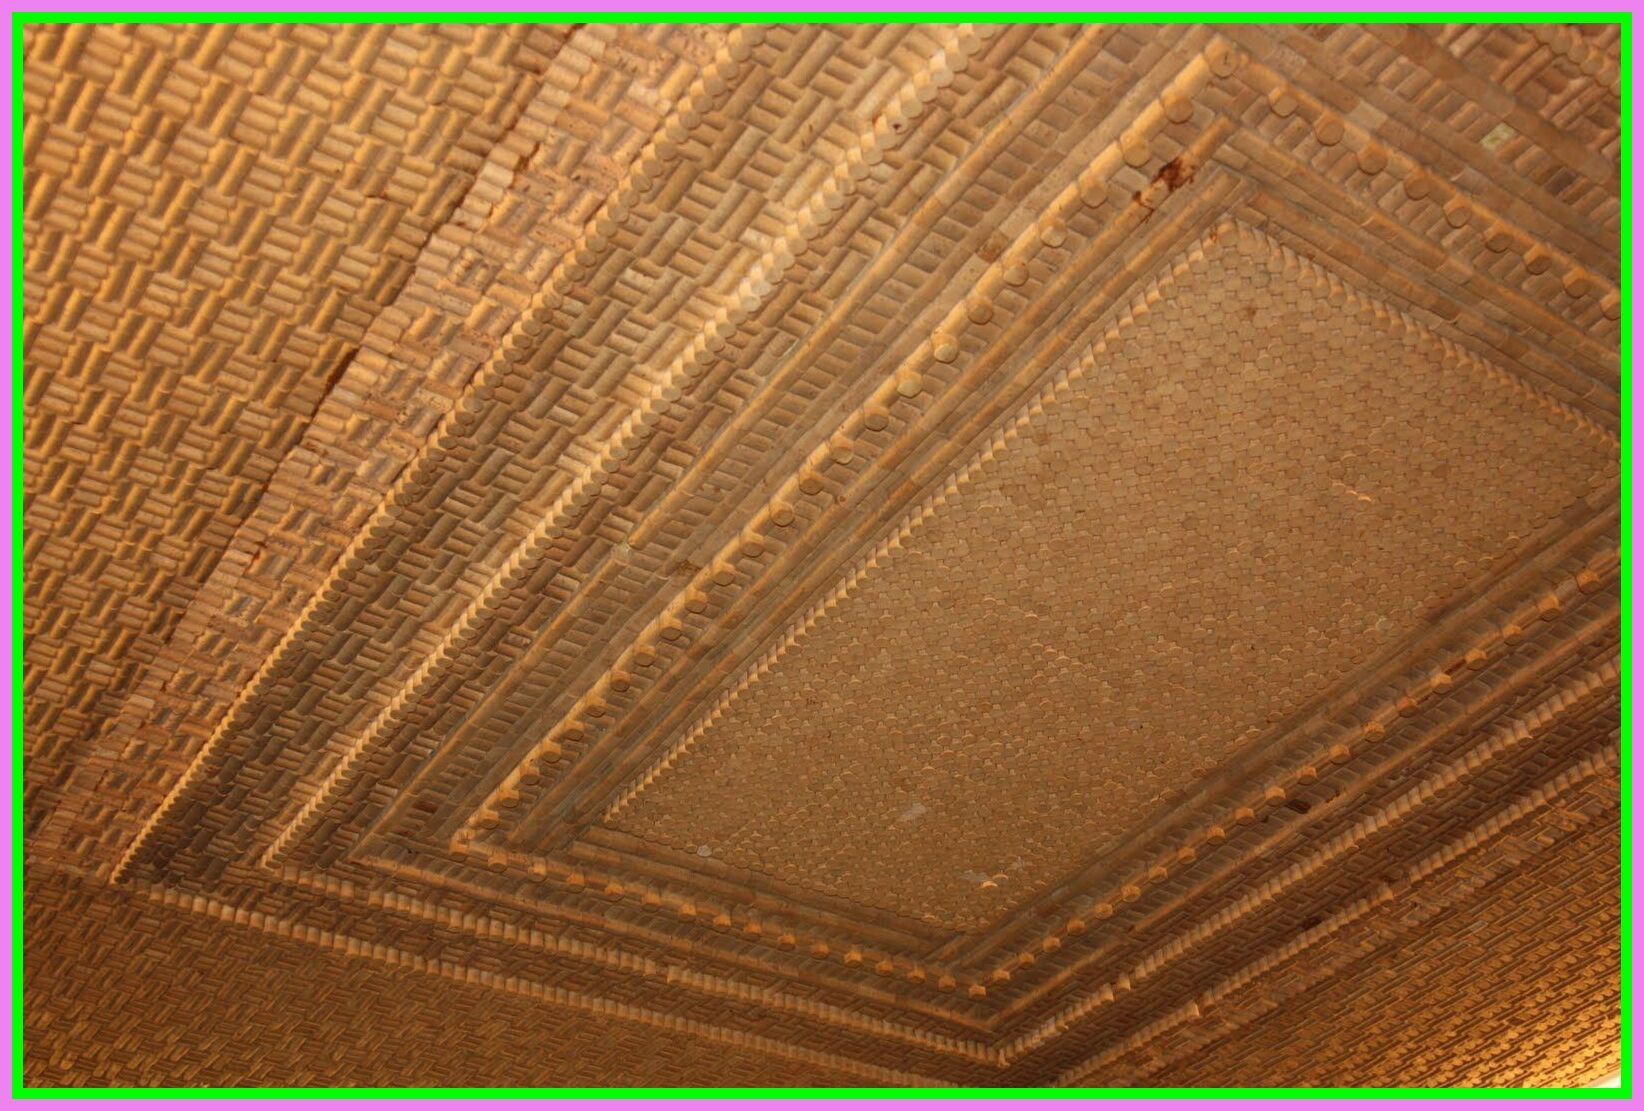 112 Reference Of Cork Ceiling Ceiling In 2020 Wine Cork Cork Tiles Cork